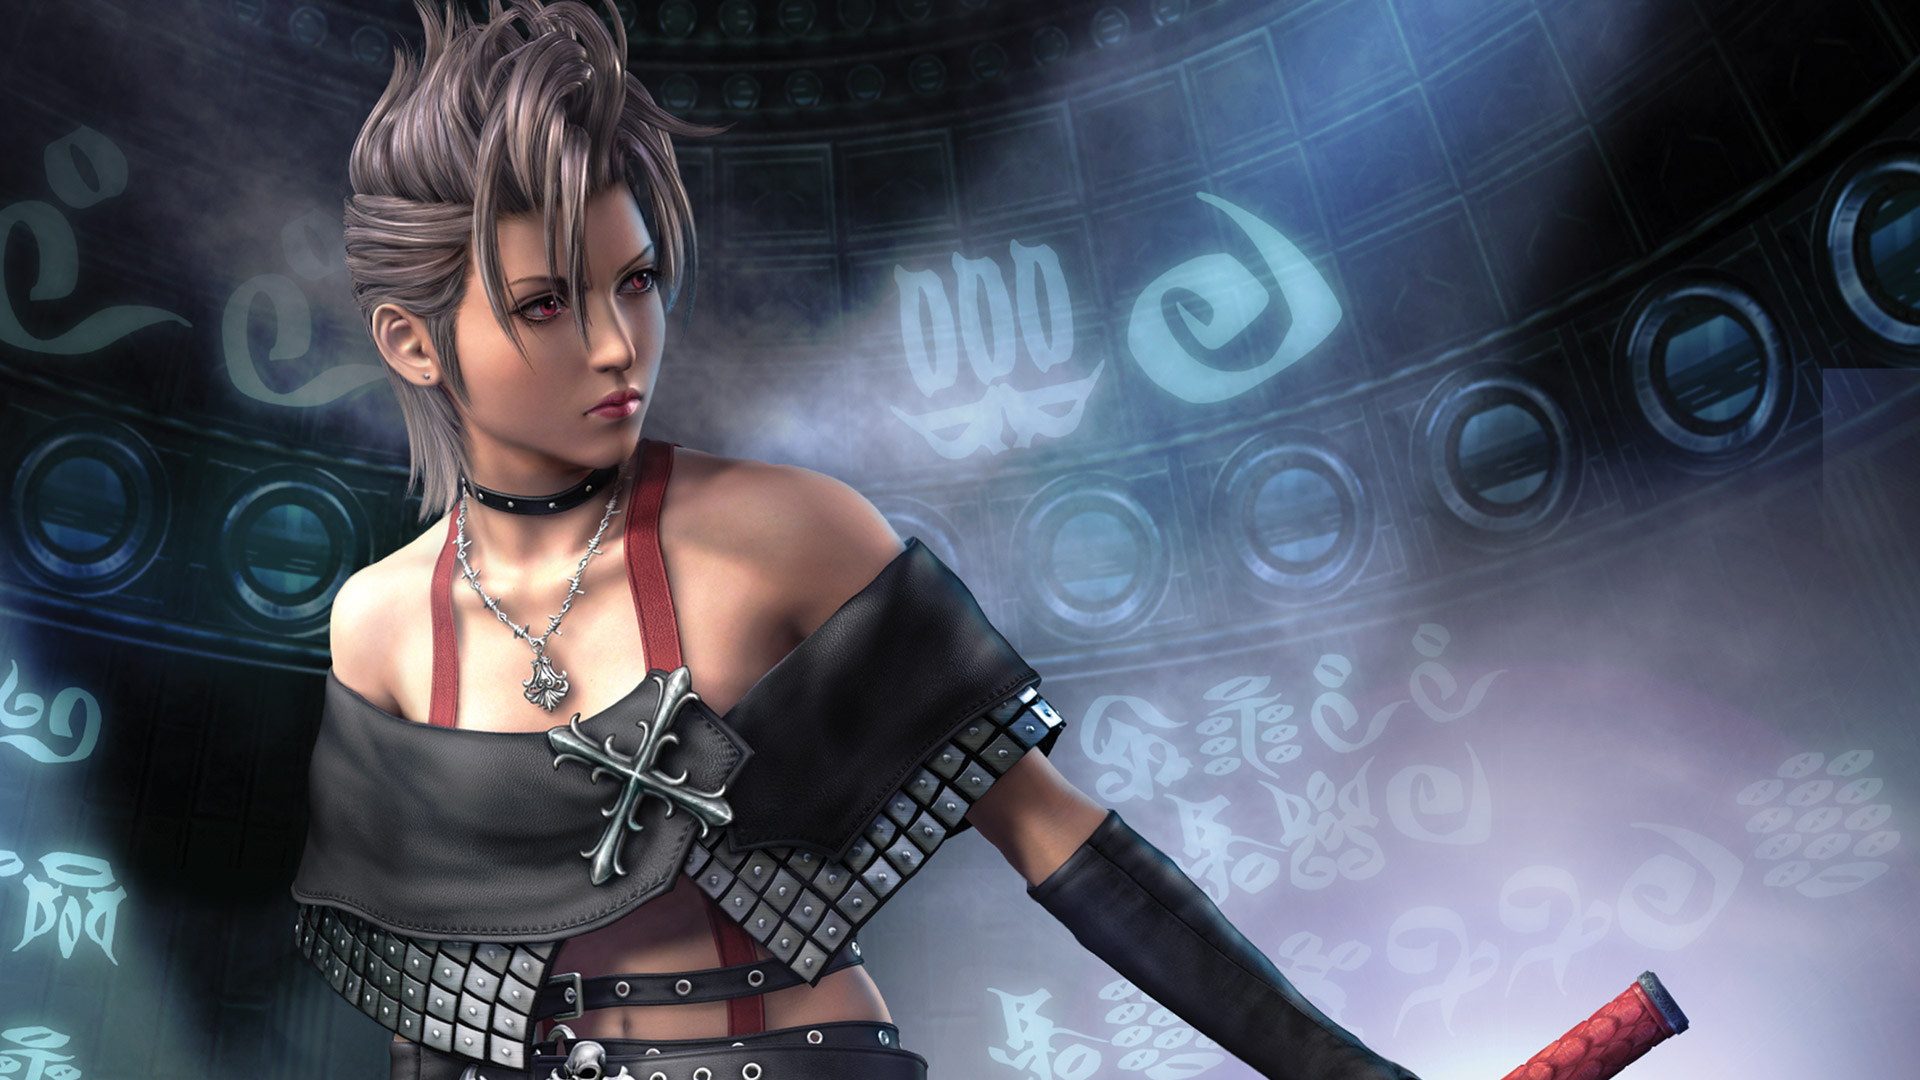 X X 2 Steam Card Exchange Showcase Final Fantasy X X 2 Hd Remaster